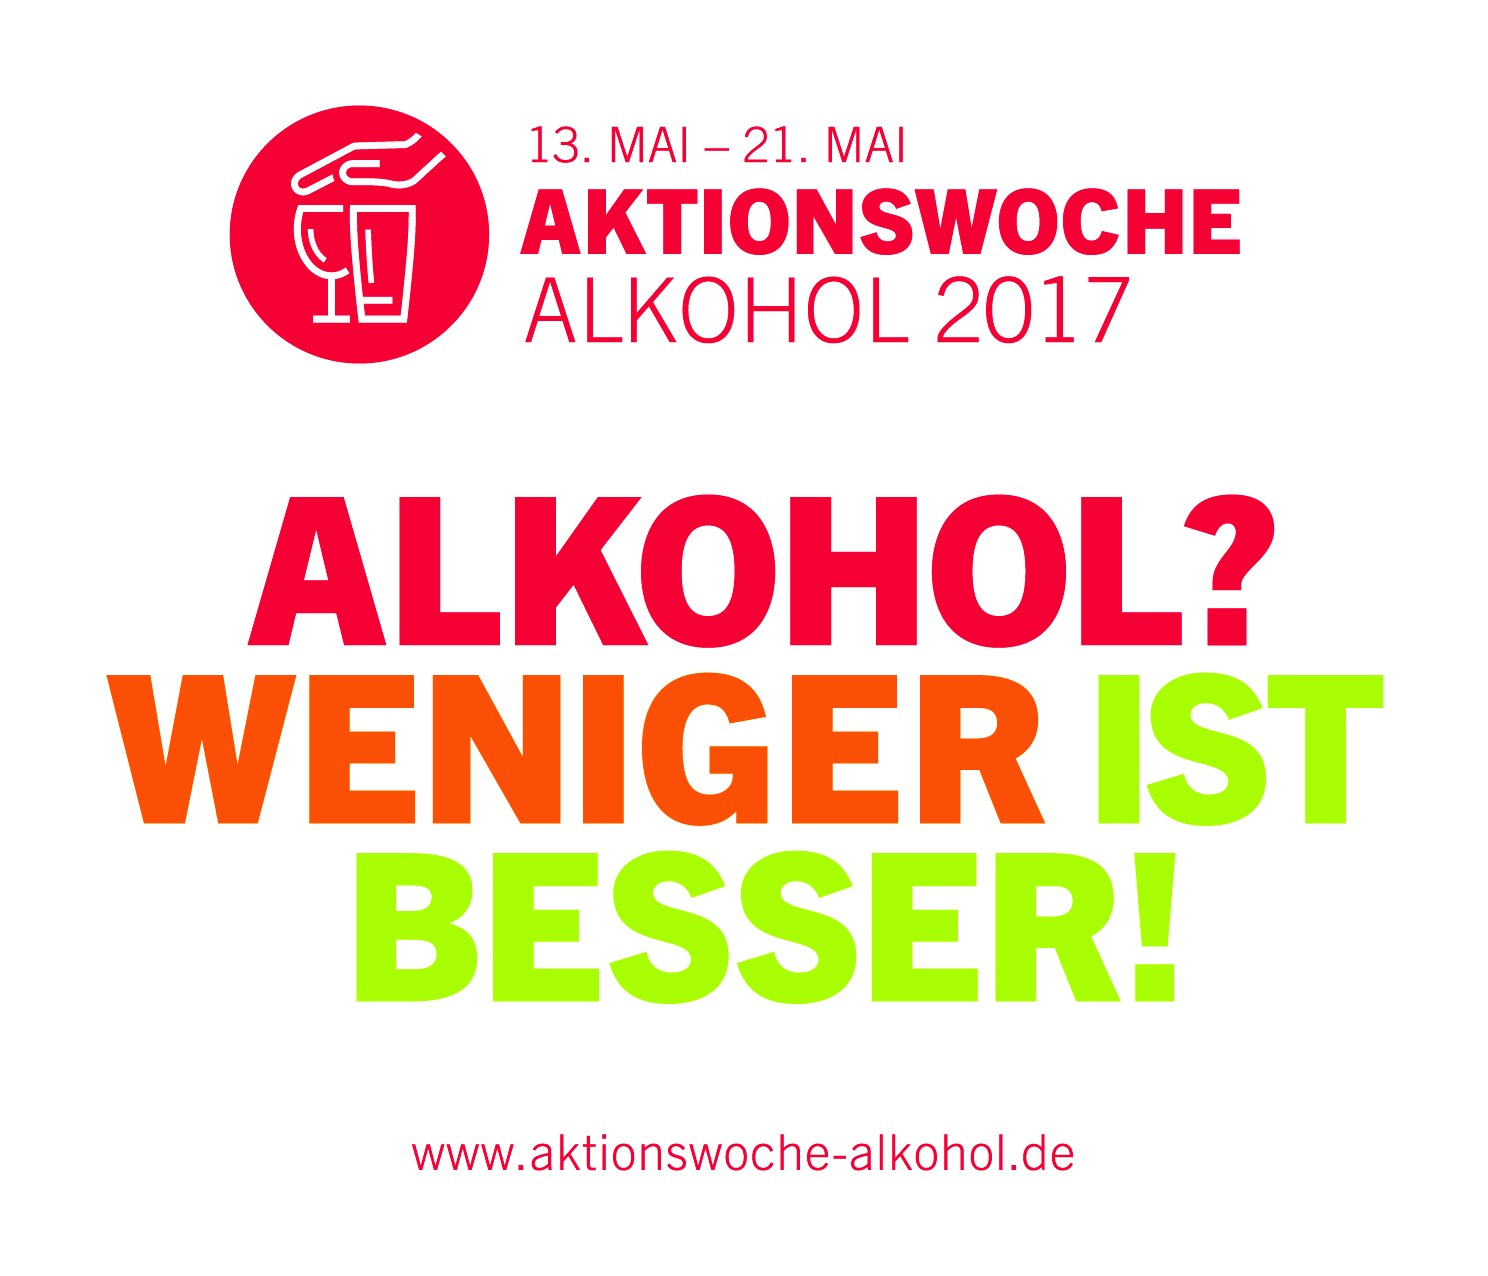 http://www.aktionswoche-alkohol.de/fileadmin/user_upload/Materialien/2016-01-13-Logo_AWA_17_Quadrat.jpg